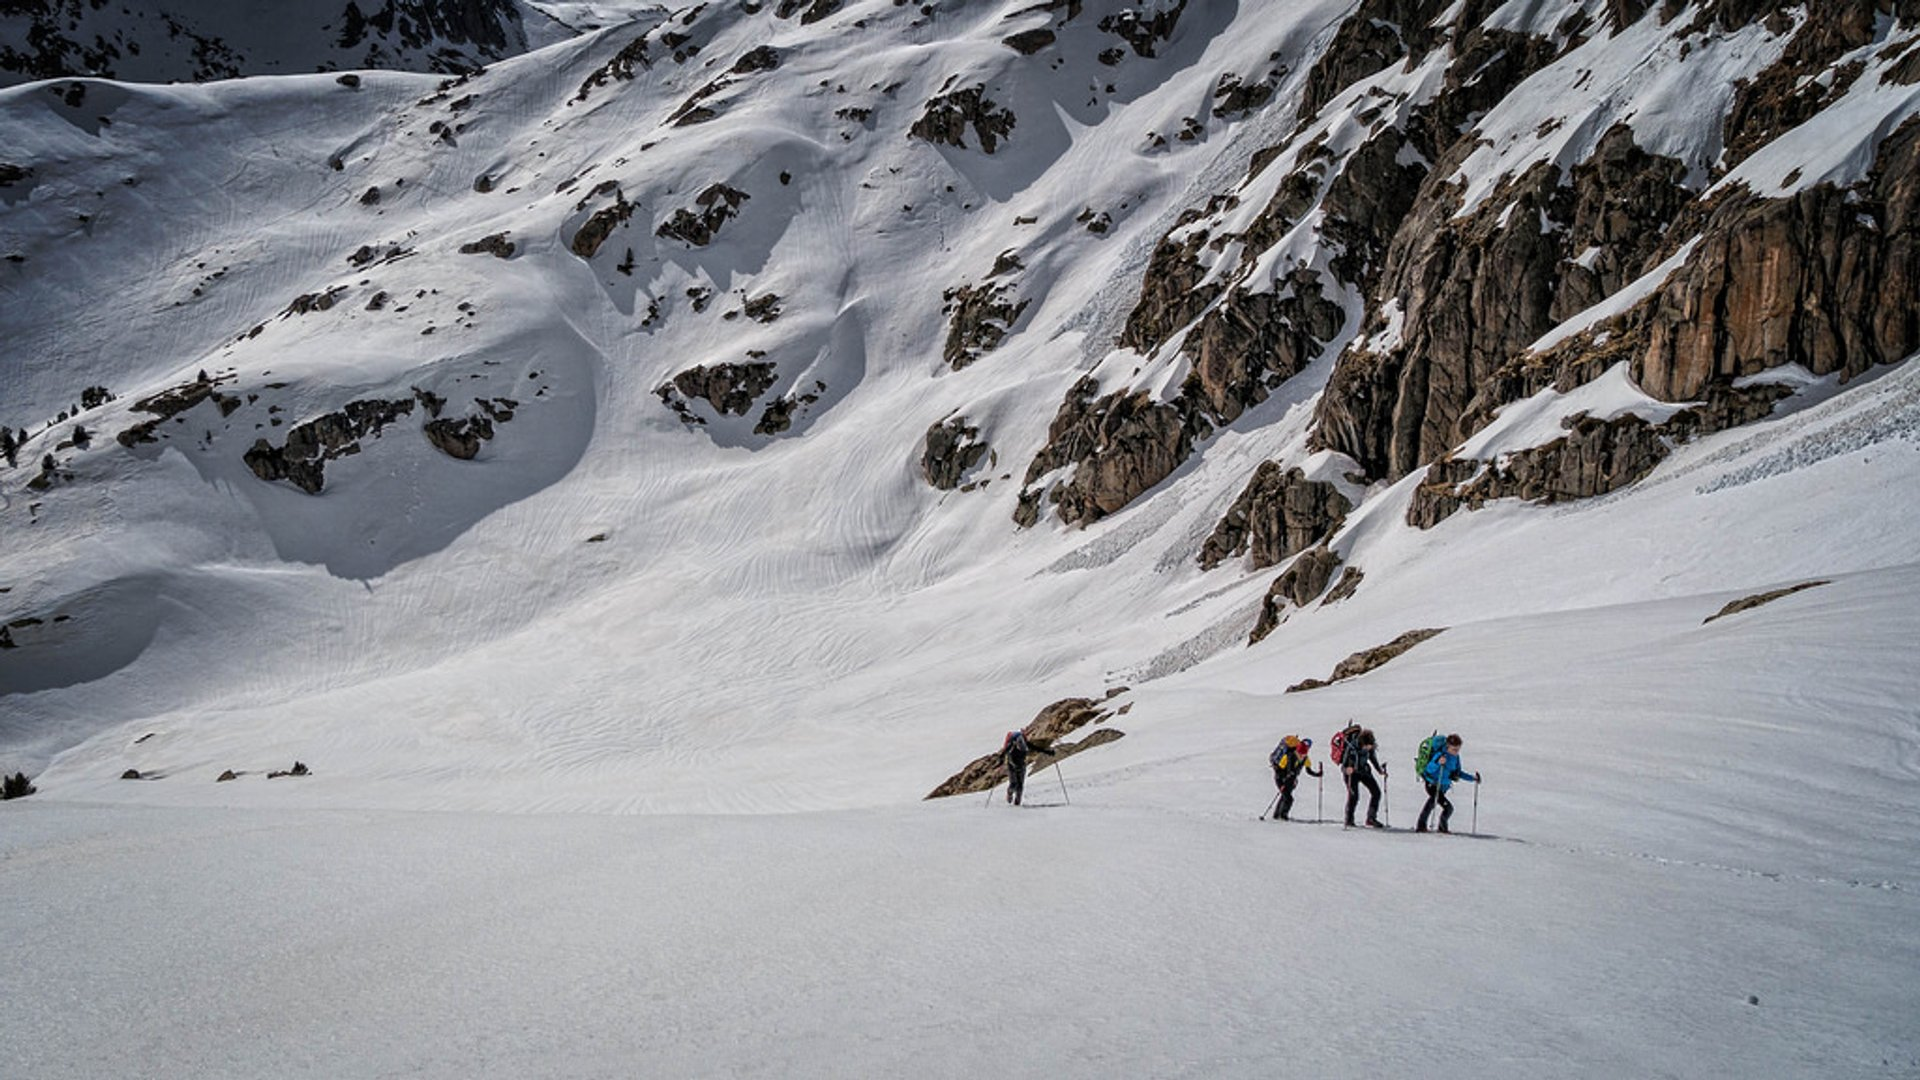 Aigüestortes National Park Winter Activities in Spain 2020 - Best Time